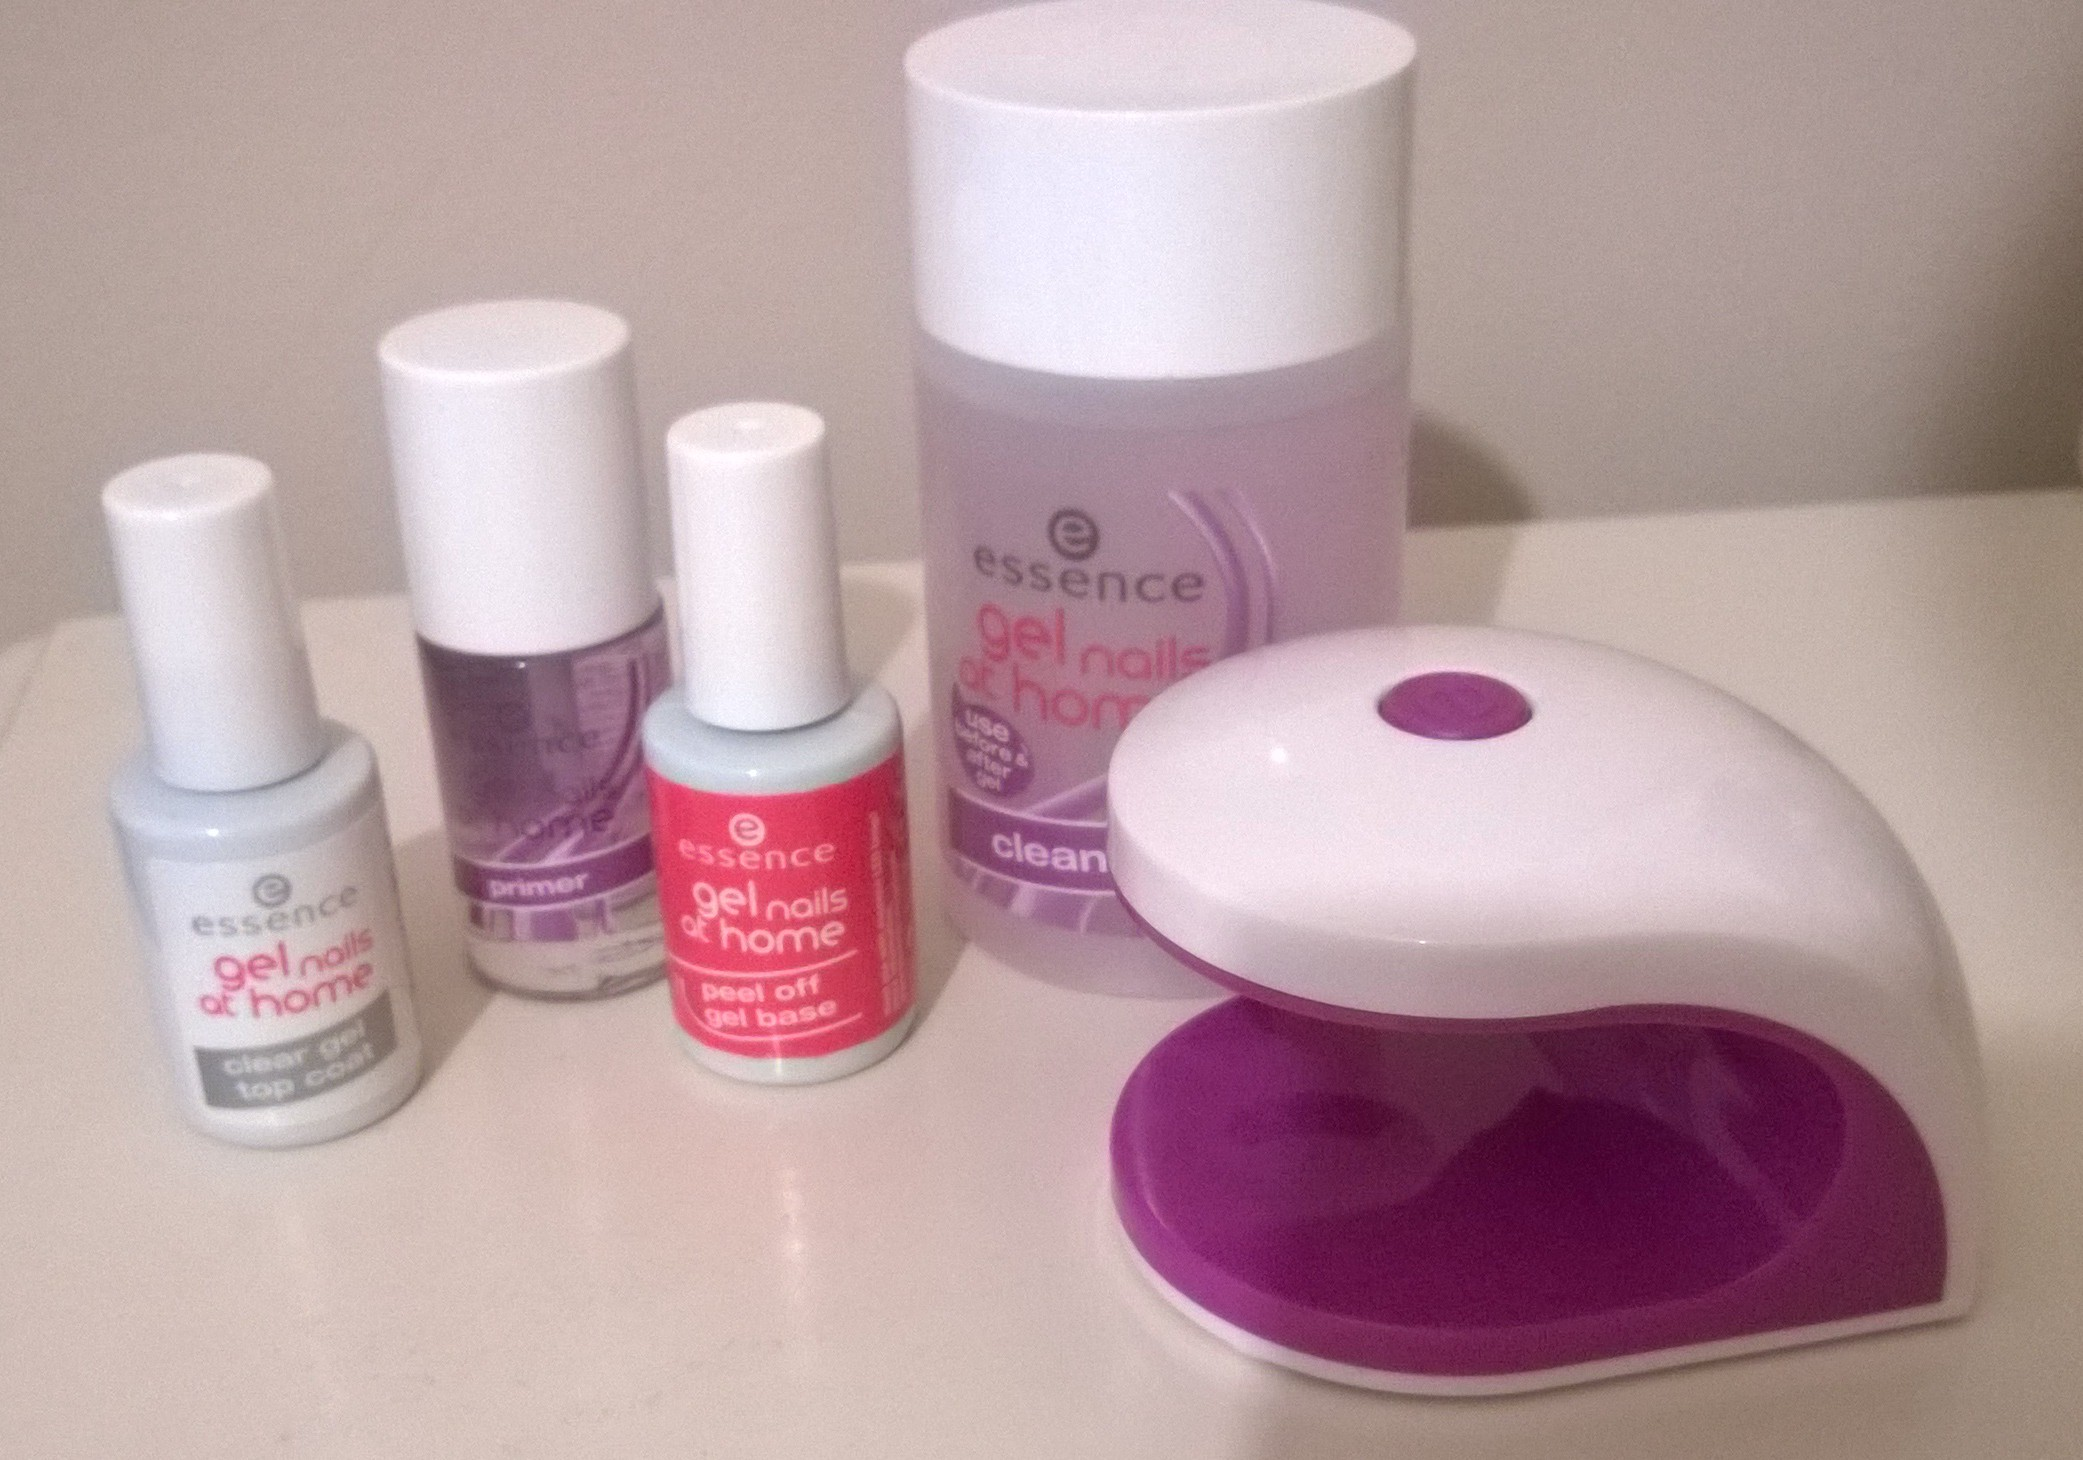 ESSENCE GEL NAILS AT HOME: REVIEW AND PICTURES | Ah Sure Tis Lovely